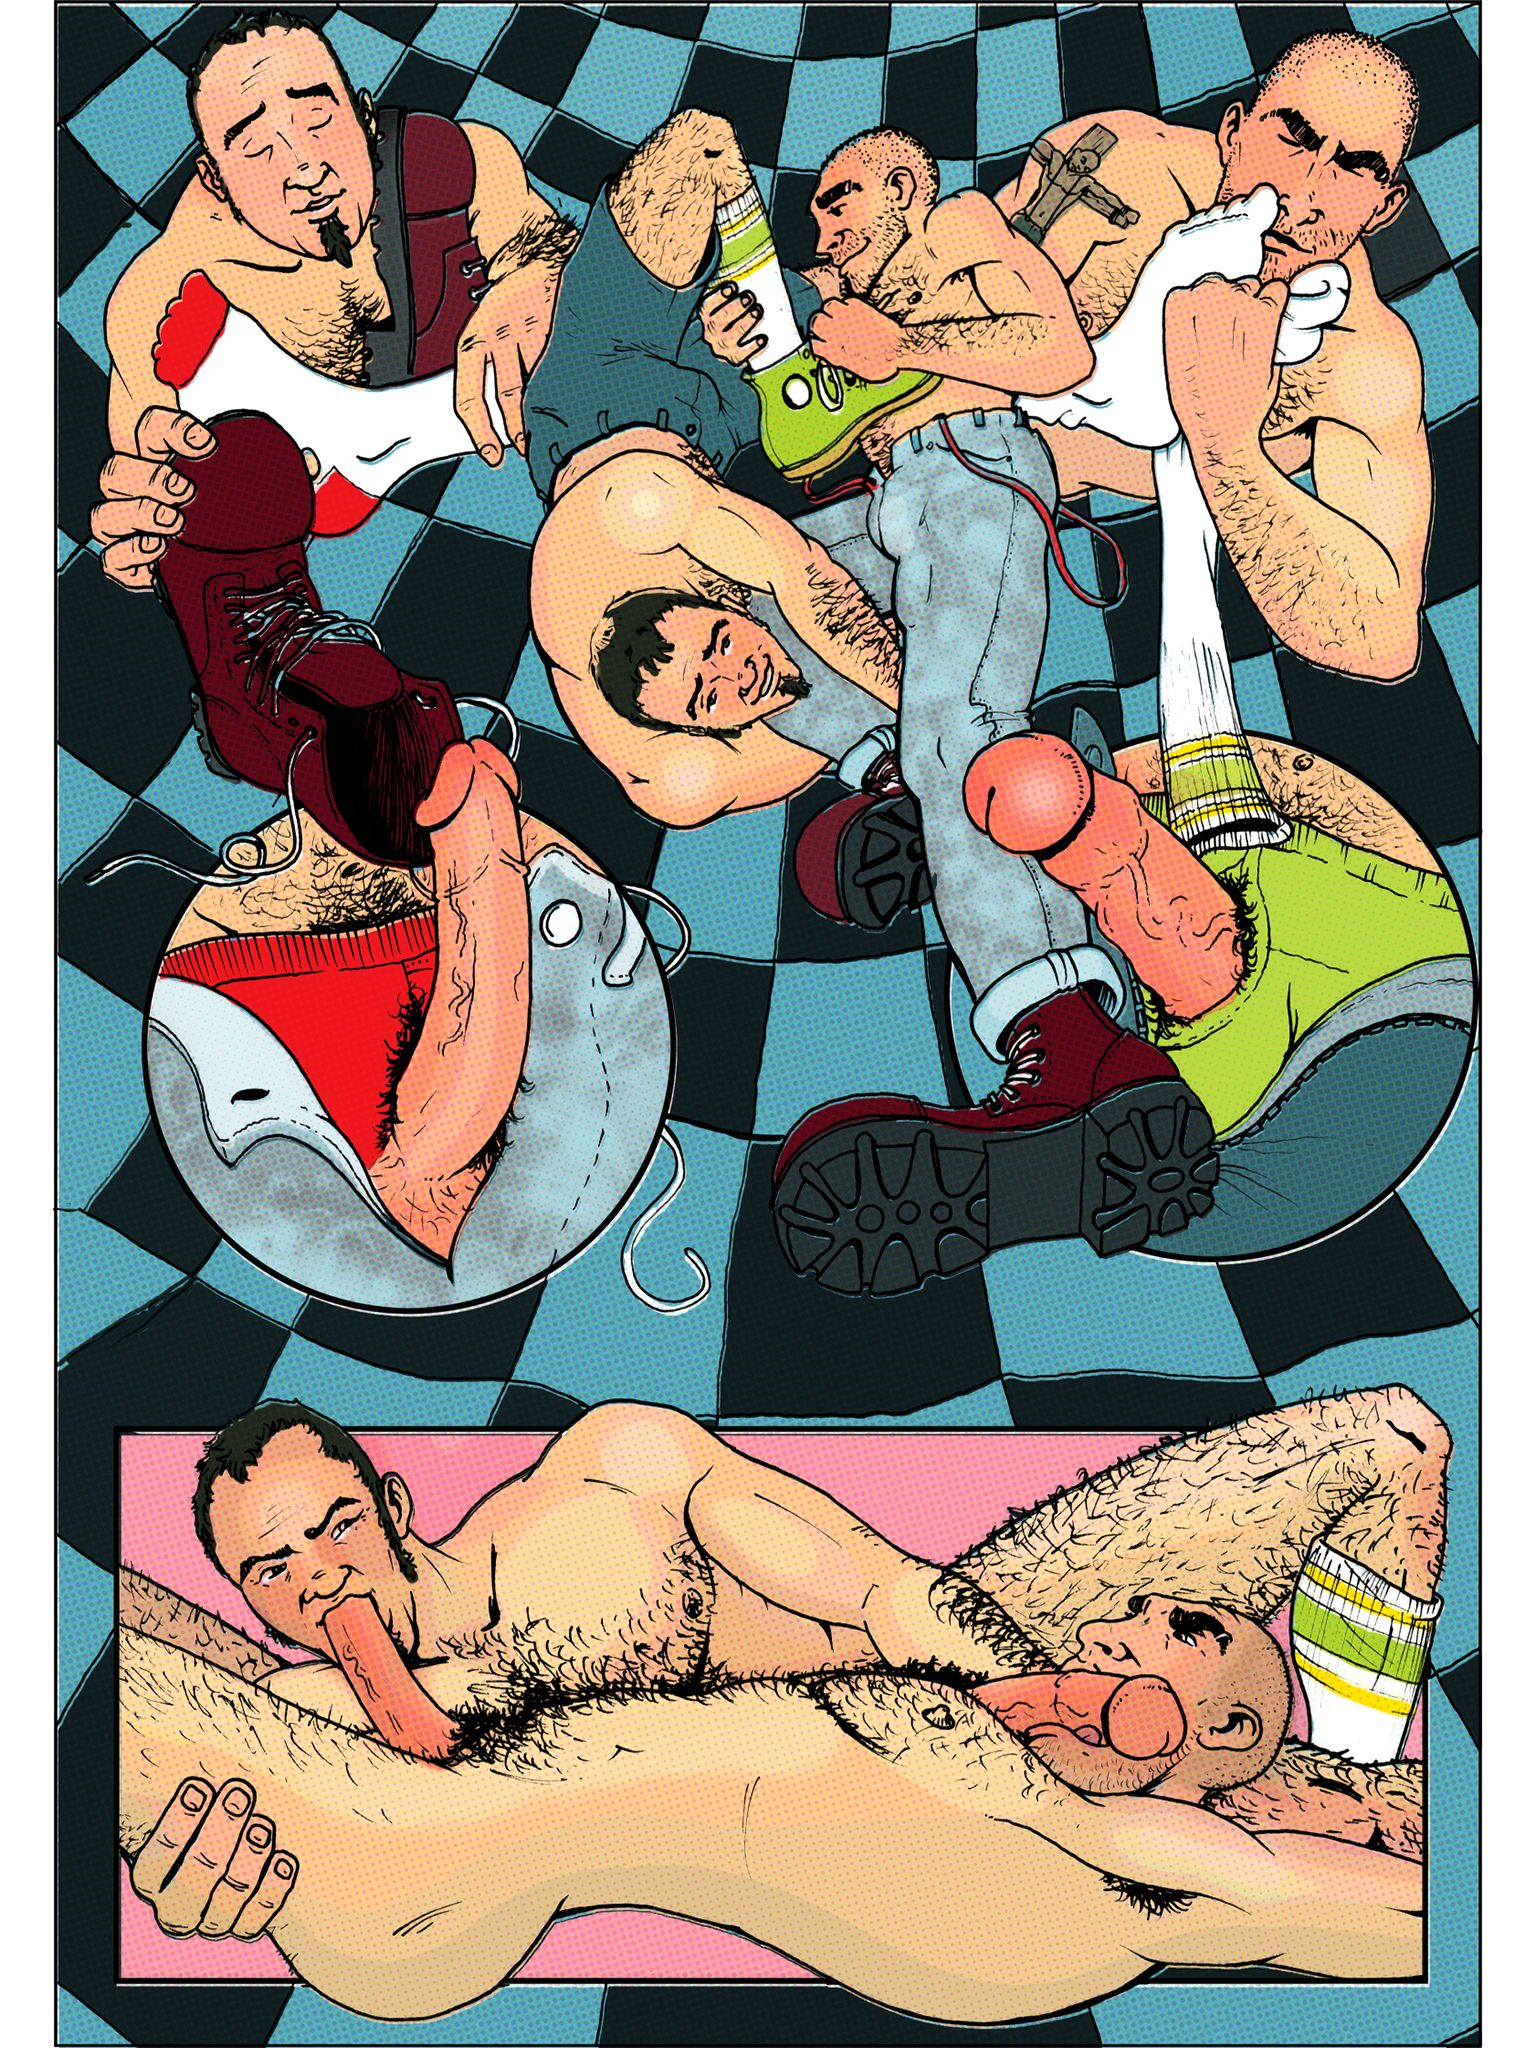 """""""The Welcome-Back Fuck"""" gay erotic mini-comic is now up for sale for only $1.35!  Buy and download at http://rbn.co/drub  Script by Dale Lazarov // Art by Drubskin :)"""